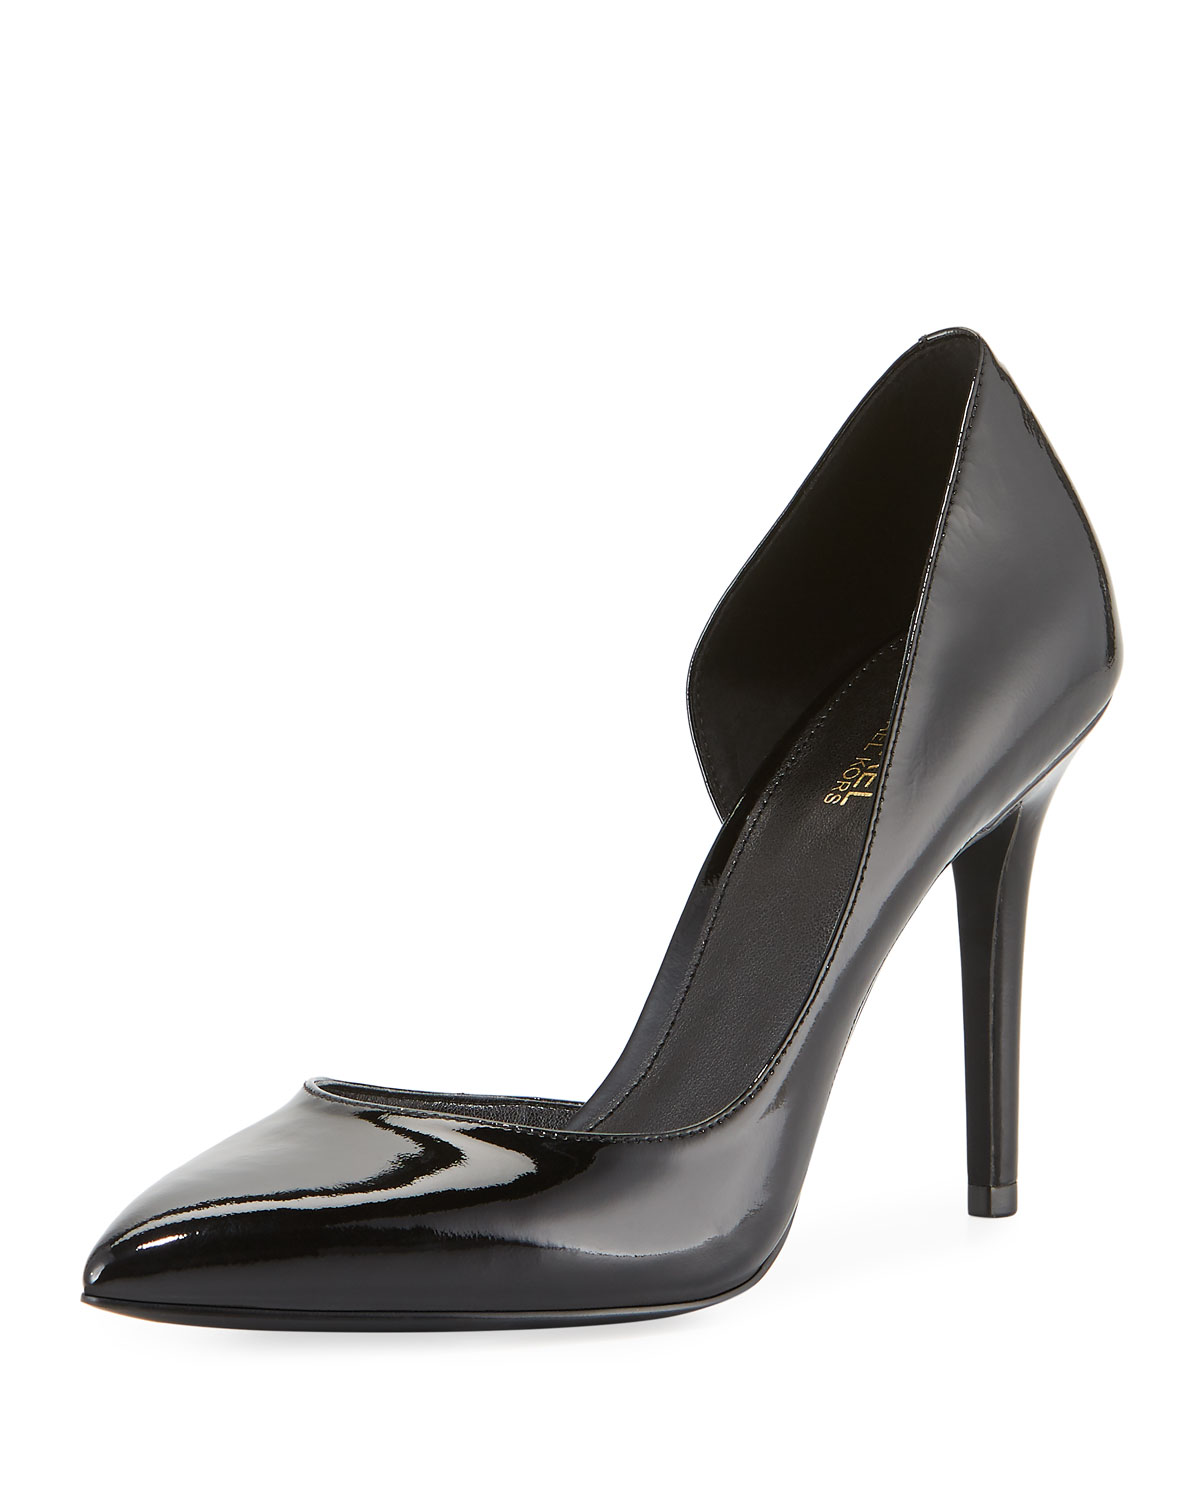 MICHAEL MICHAEL KORS CLAIRE PATENT LEATHER D'ORSAY PUMPS